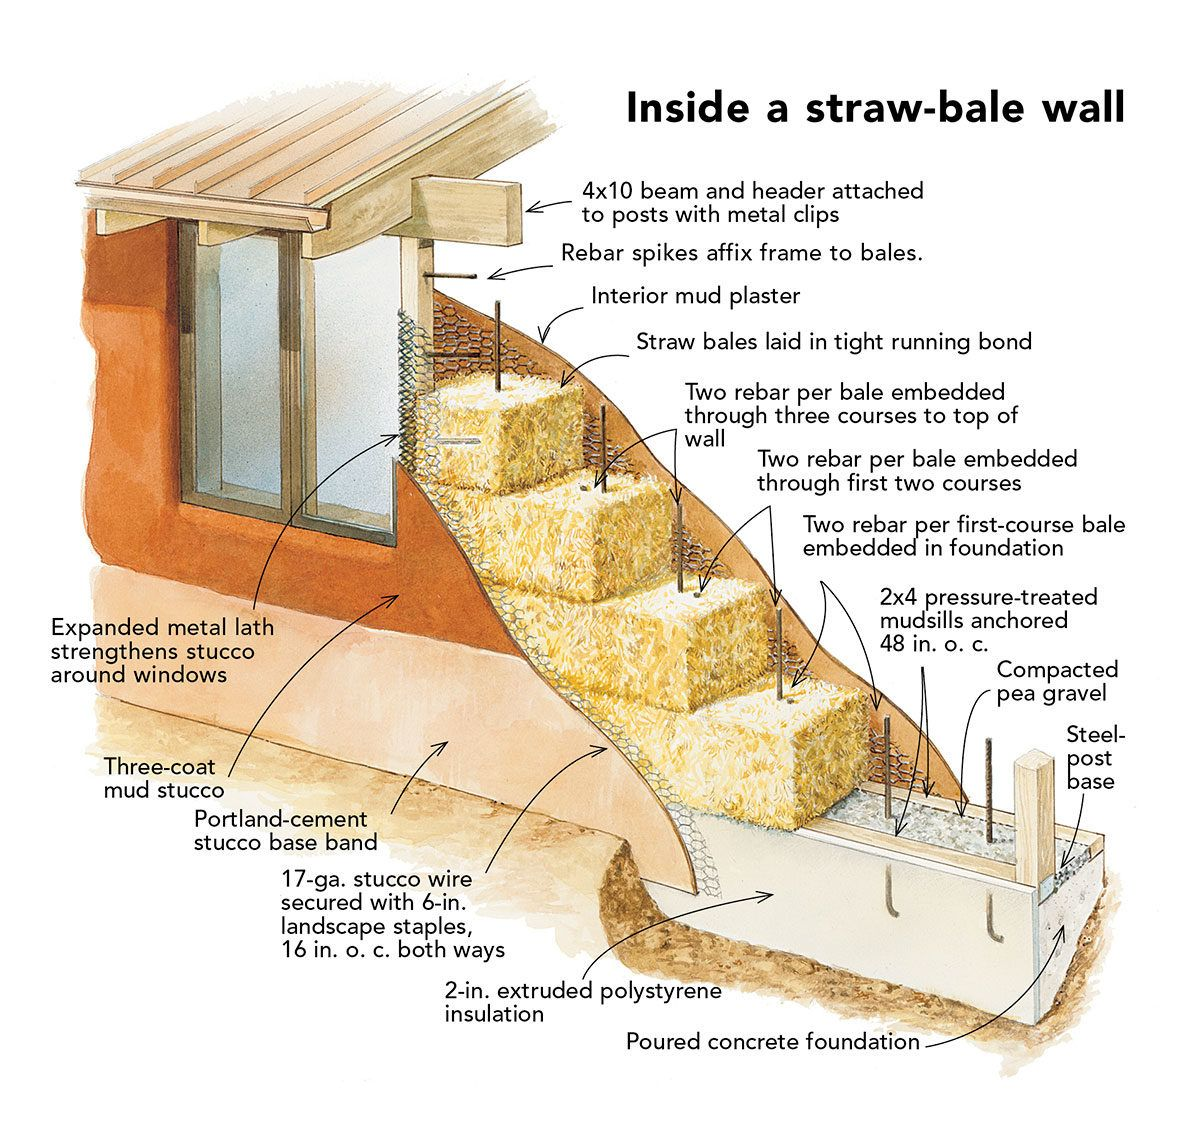 The Case For Straw Bale Houses Straw Bale House Straw Bales Straw Bale Construction